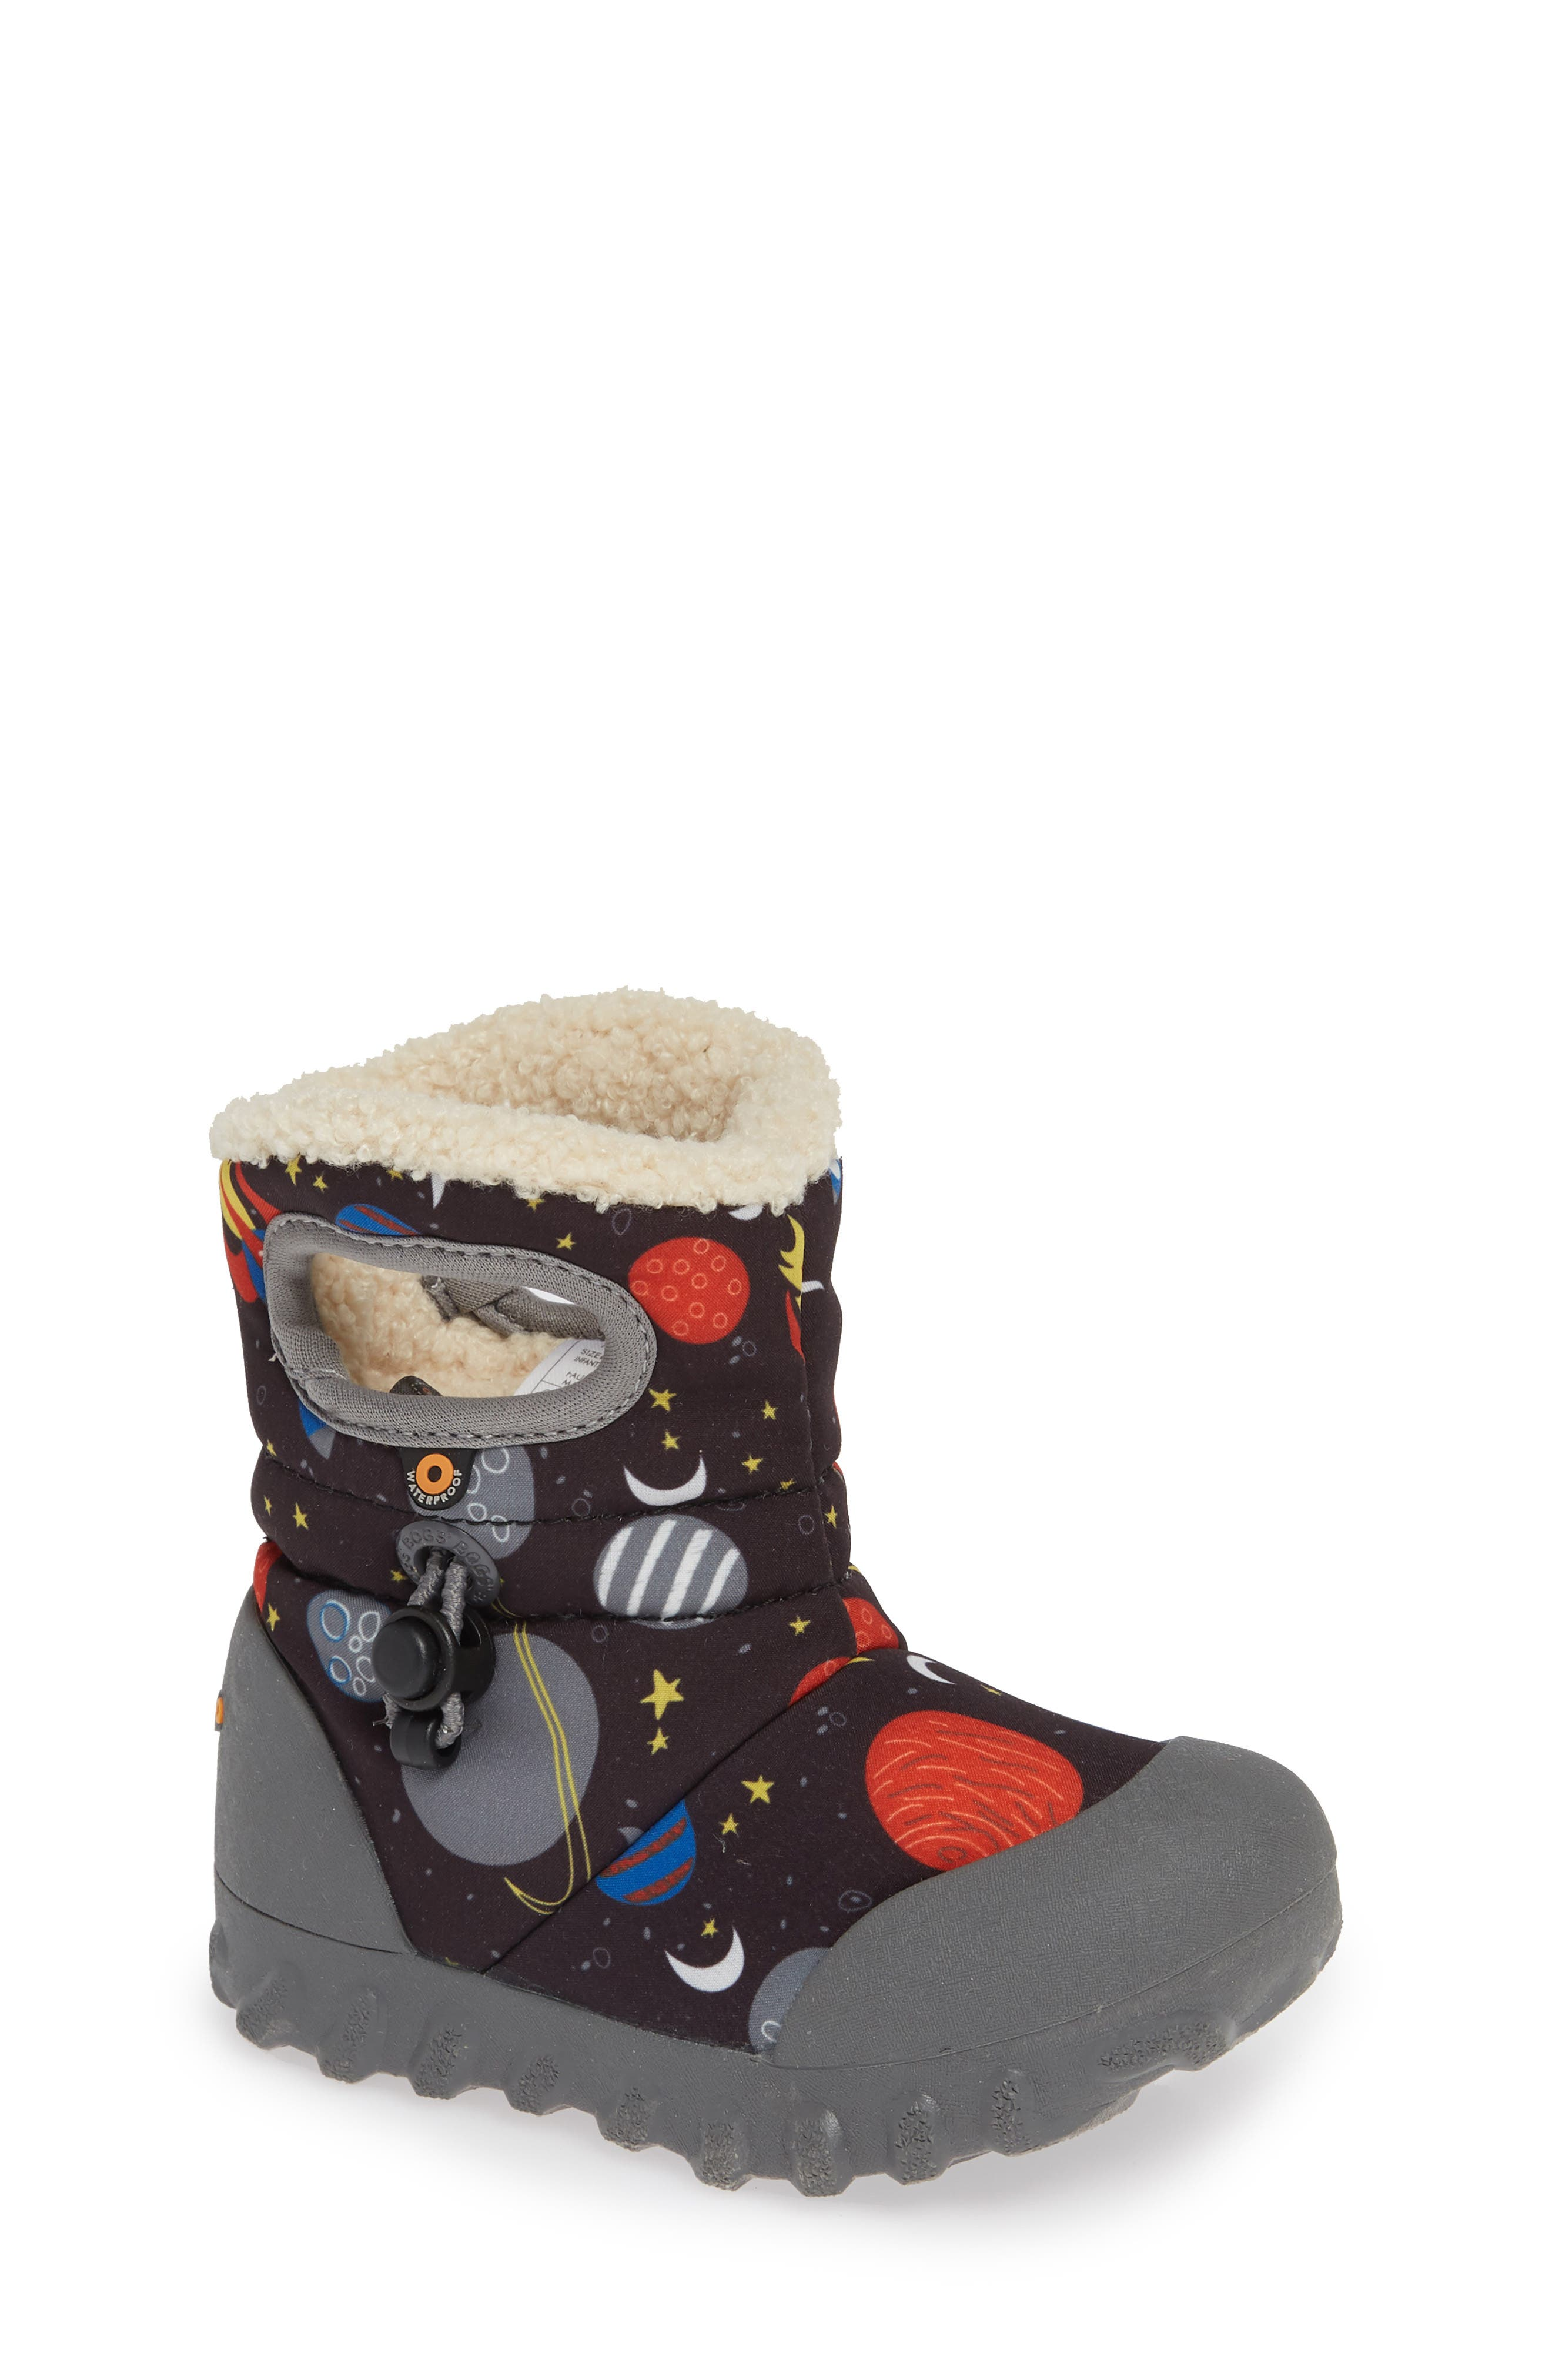 B-MOC Space Waterproof Insulated Faux Fur Boot,                             Main thumbnail 1, color,                             009